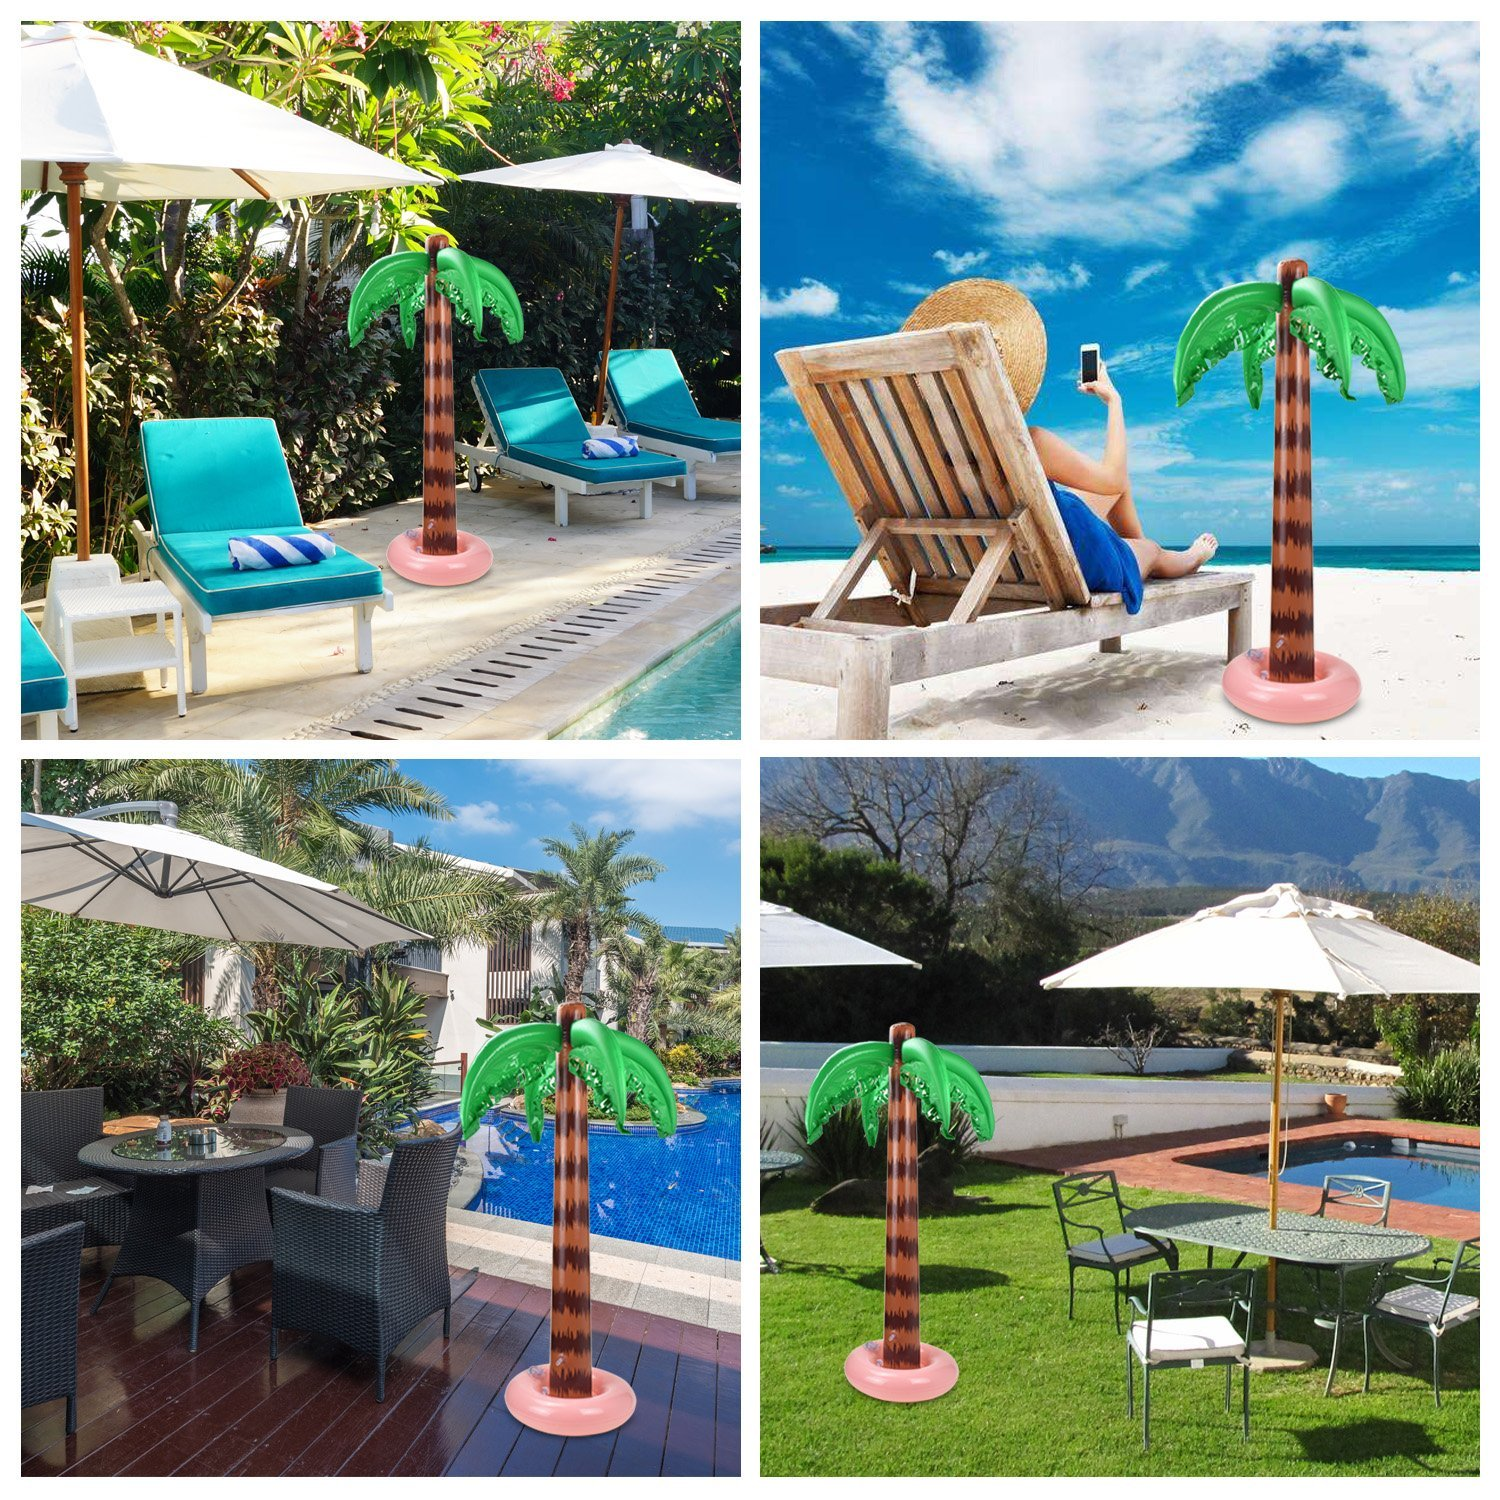 Alcoon 2 Pack Inflatable Palm Trees 90 CM Coconut Trees Beach Backdrop Favor for Tropical Hawaiian Luau Party Decoration